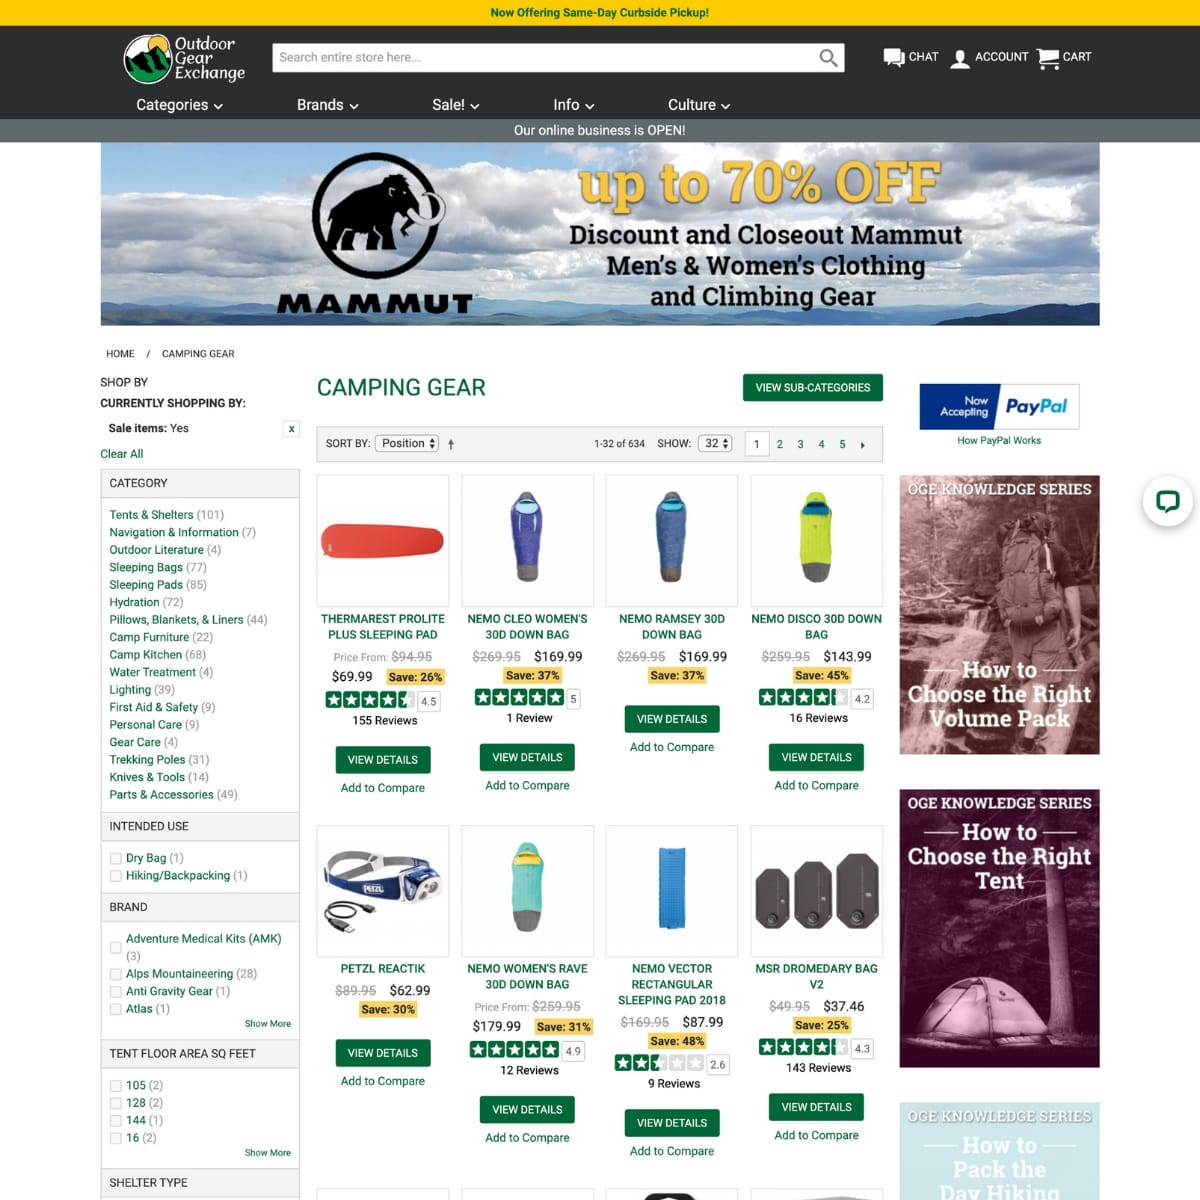 Screen shot of Outdoor Gear Exchange website